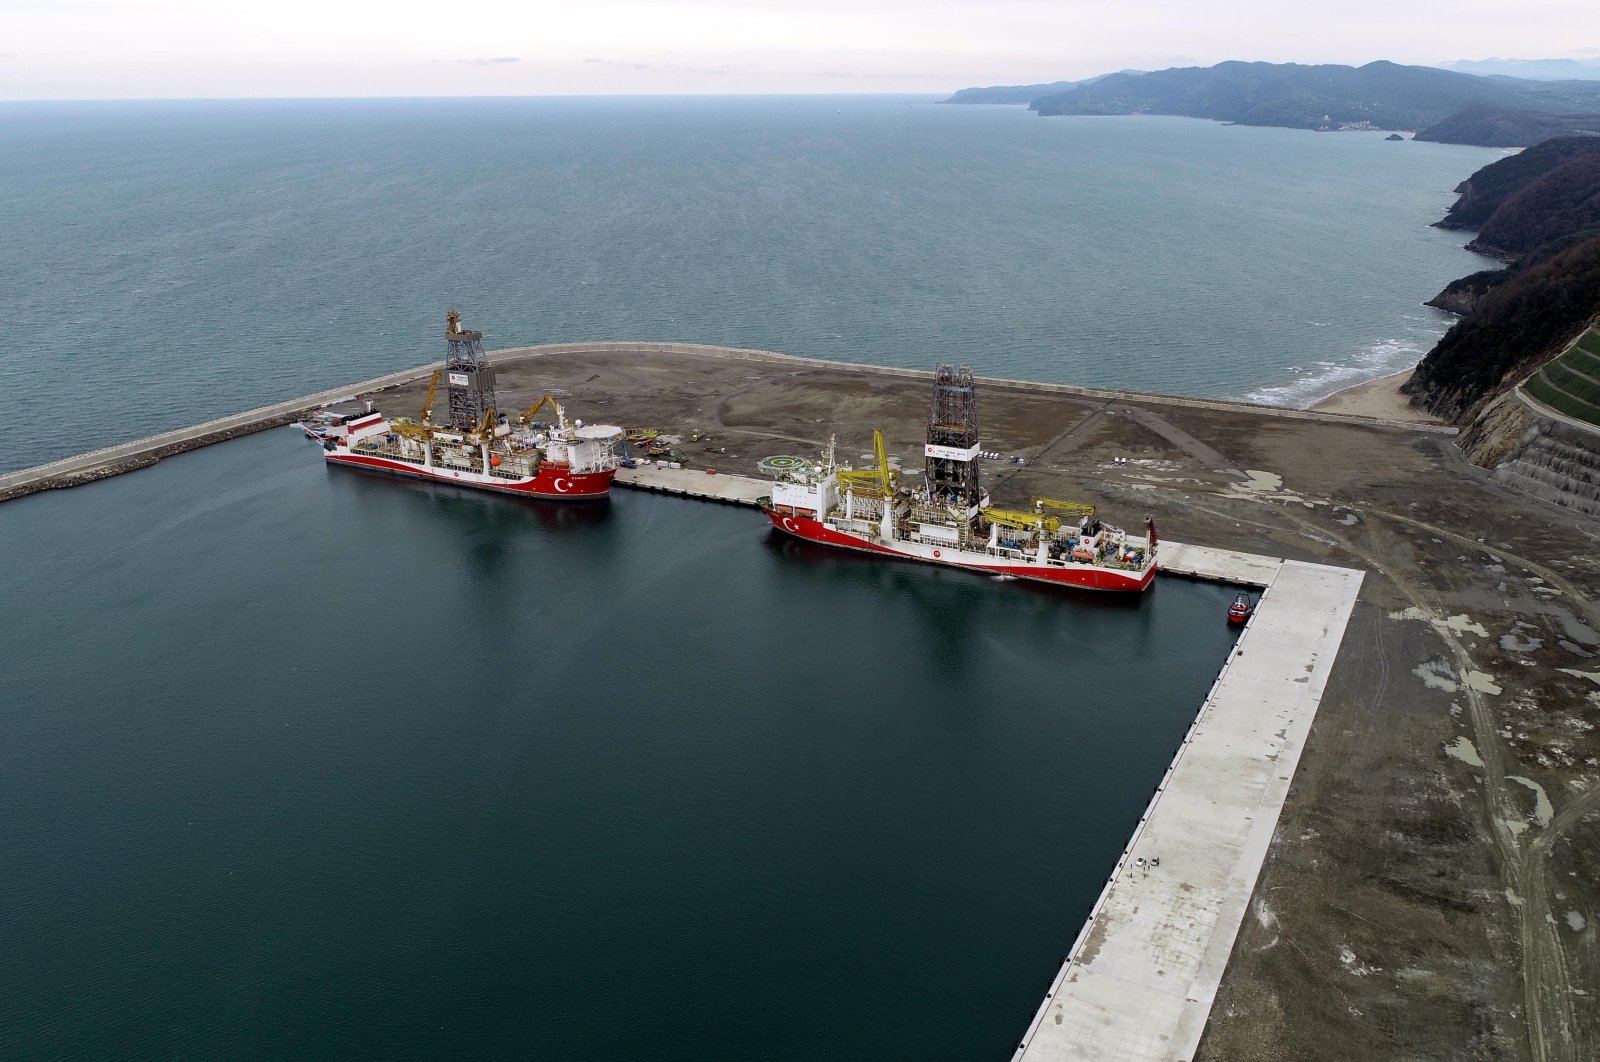 Turkey's drillships Kanuni (L) and Fatih are seen at the Port of Filyos in northern Zonguldak province, Turkey, March 20, 2021. (DHA Photo)